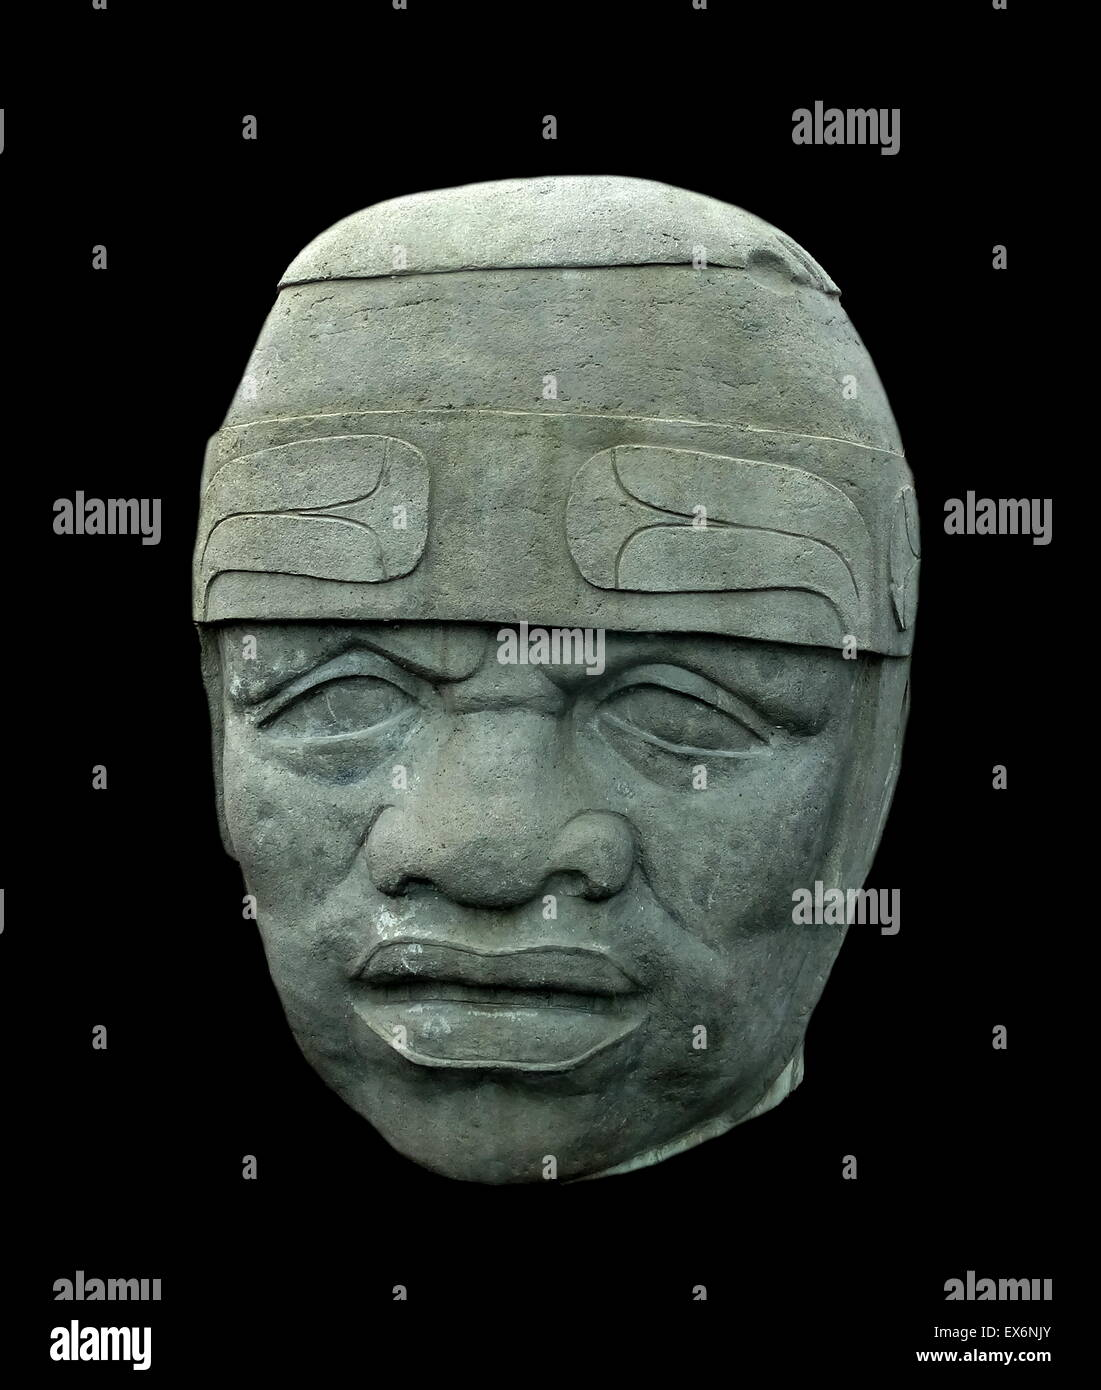 Olmec colossal head No. 8 moulding. Sixteen of these heads were found in the states of Veracruz and Tabasco along - Stock Image